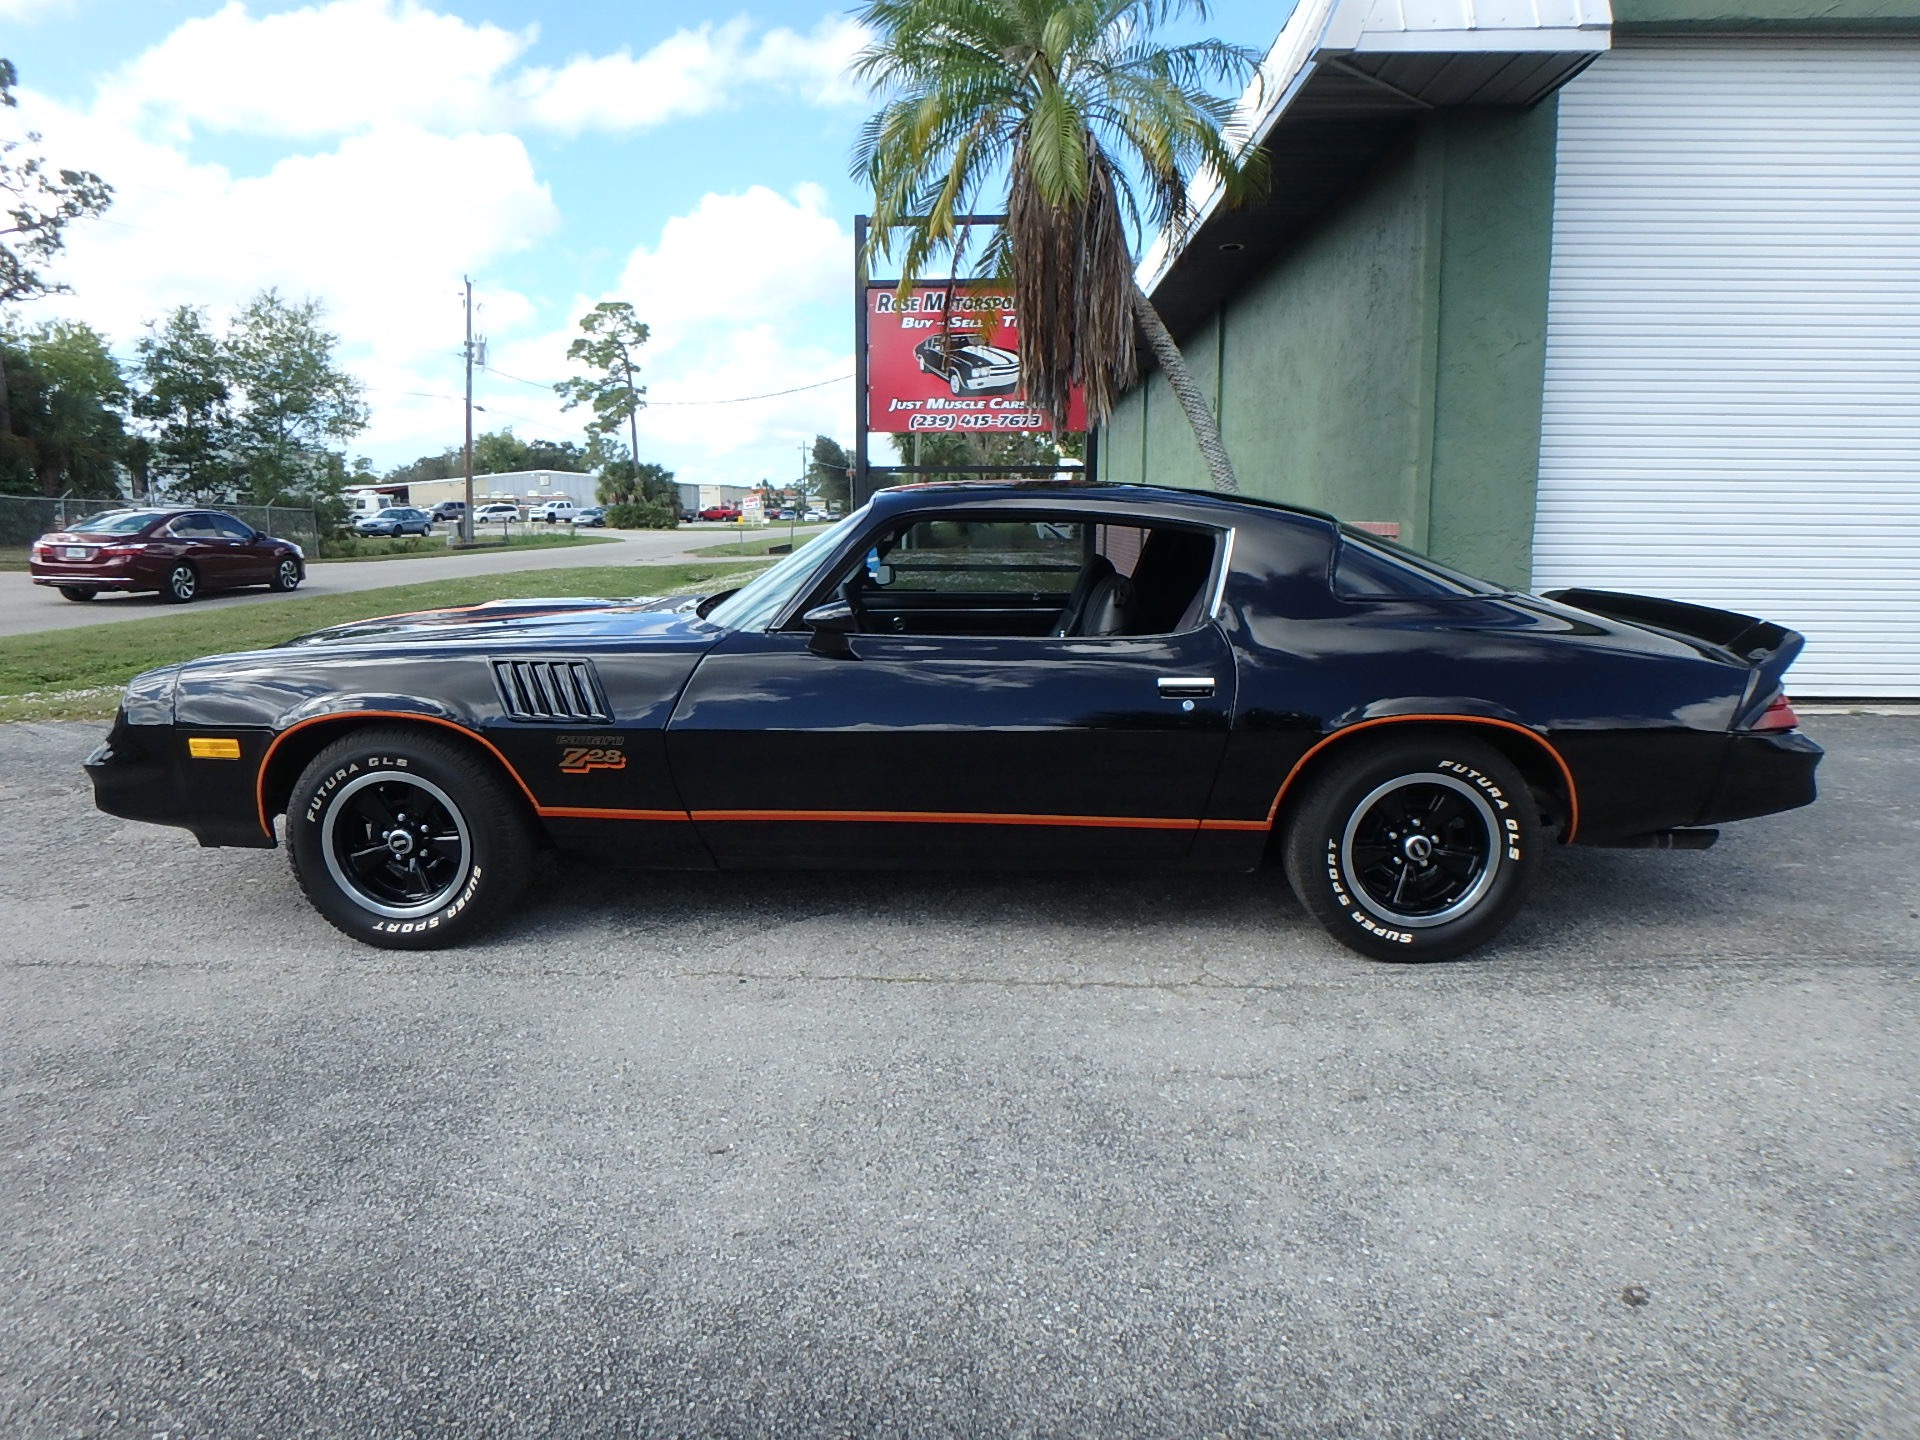 Used 1978 Chevy Camaro Z28 For Sale 10 900 Rose Motorsports Inc Stock 2219